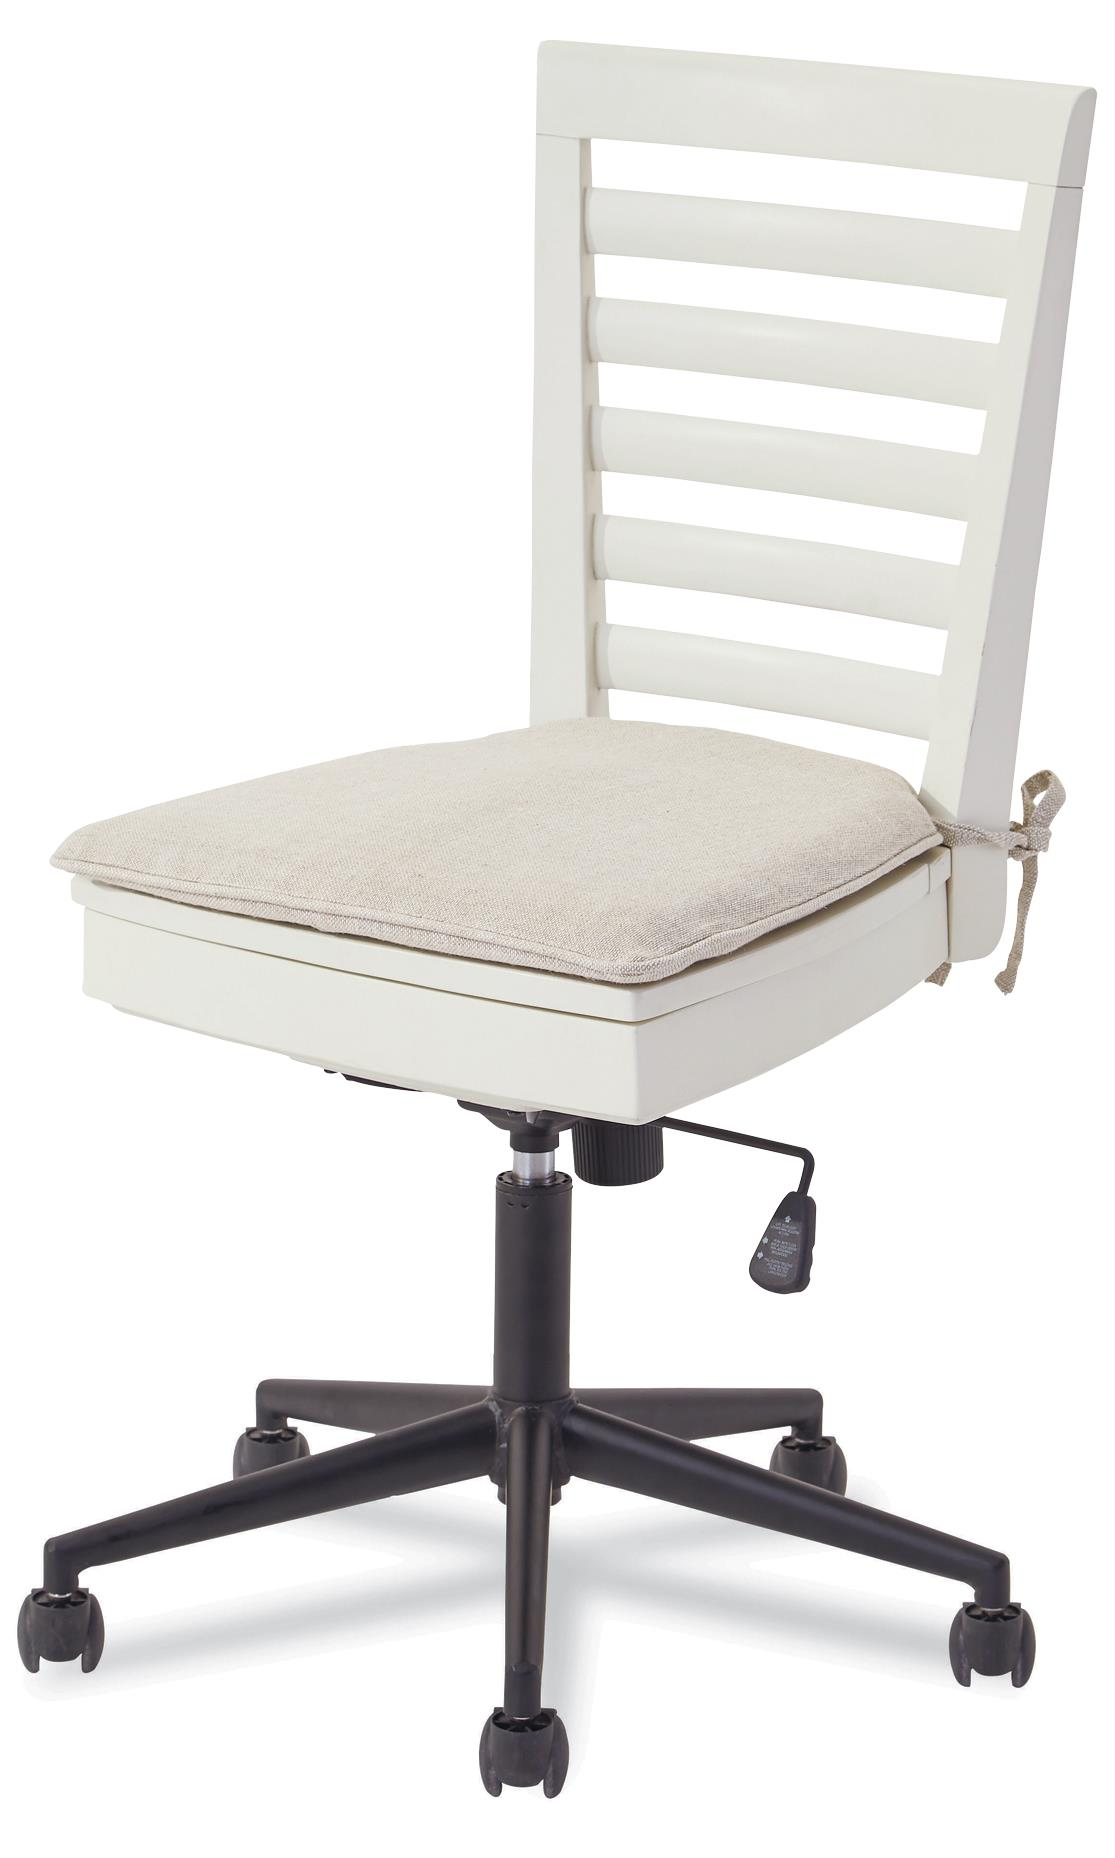 #myRoom Desk Chair by Smartstuff at Red Knot